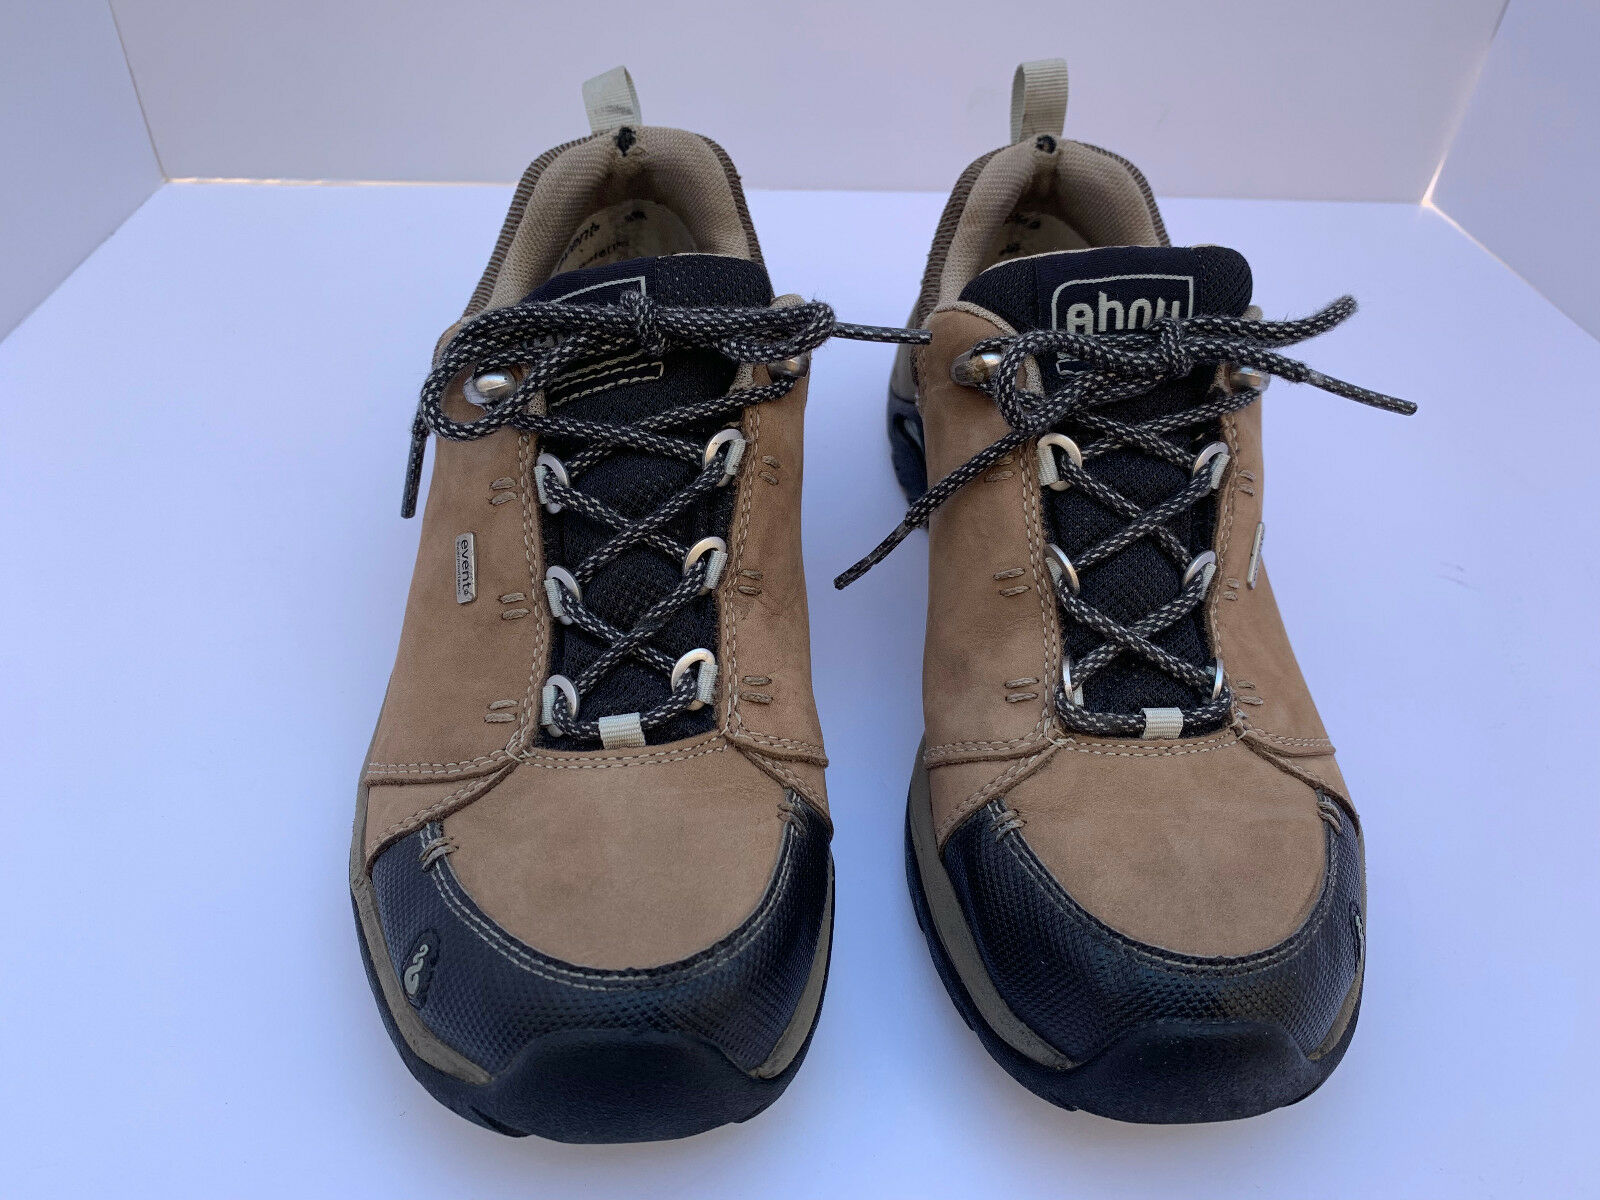 Ahnu Montara 2 11 WP Leather chaussures Vibram Walking Trail Hiking chaussures femmes's 7